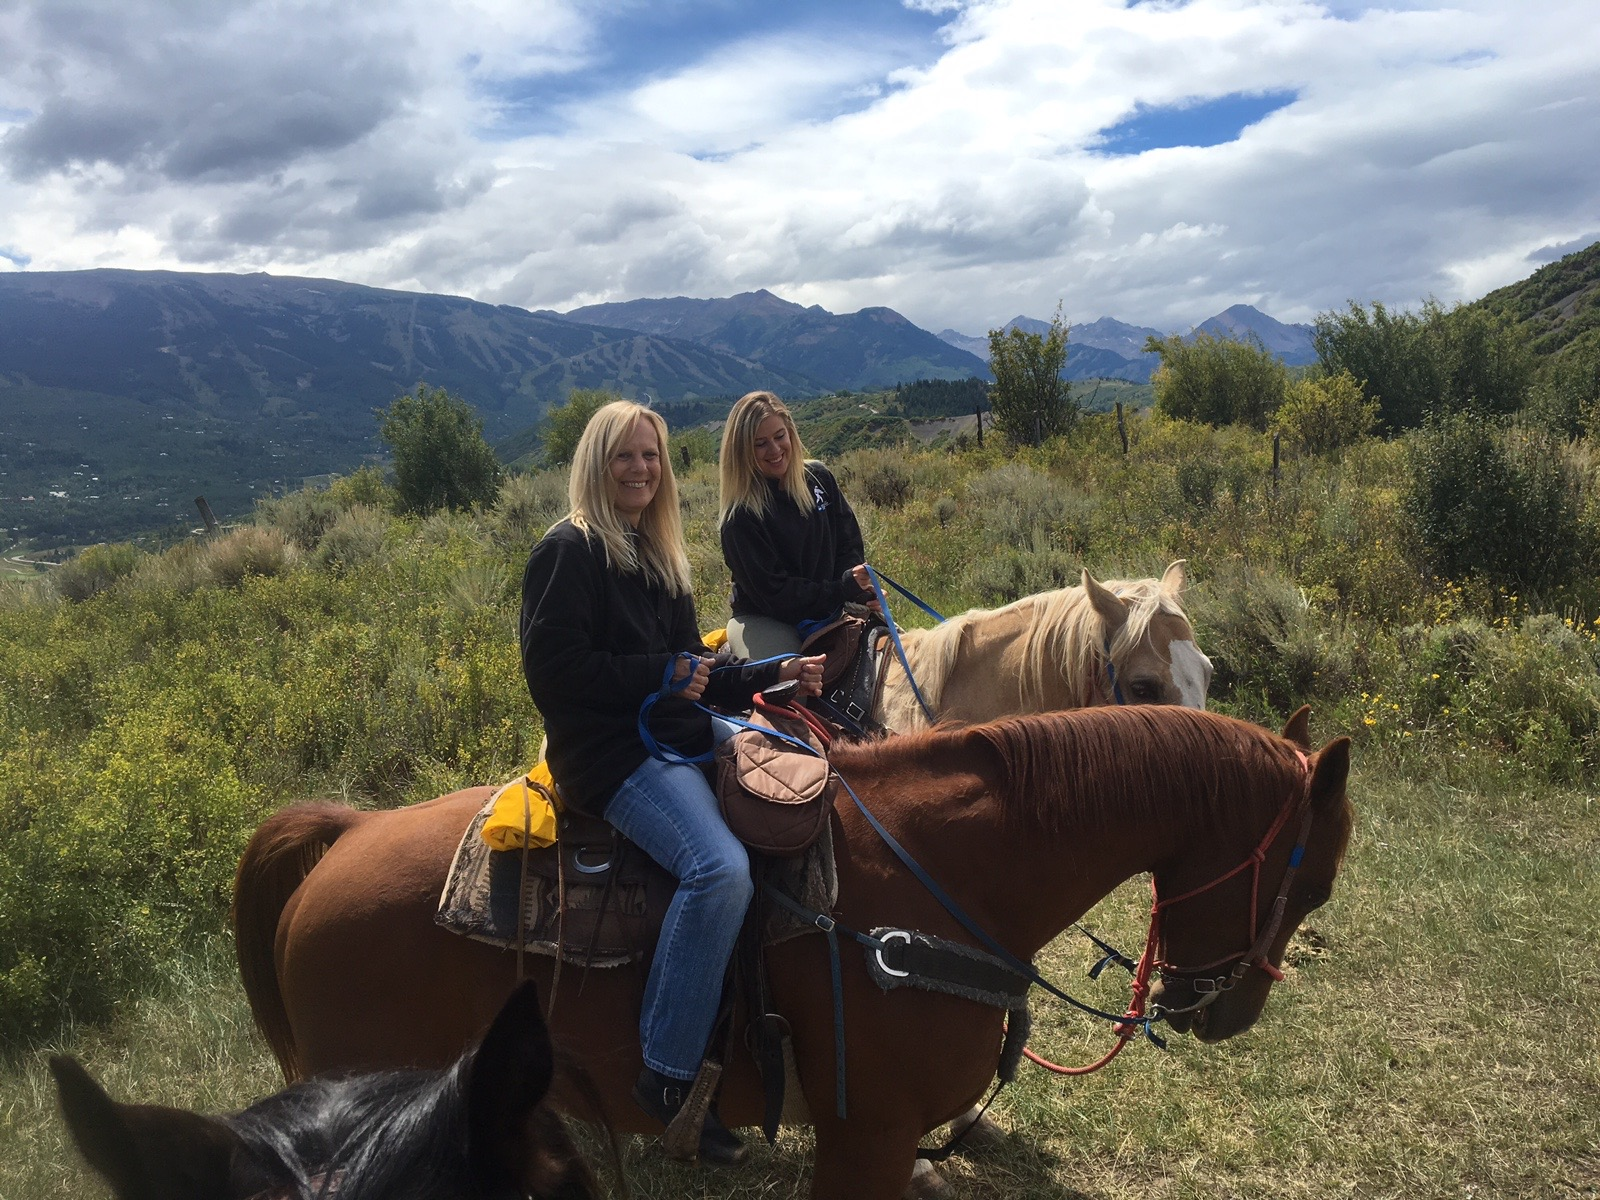 k and me riding